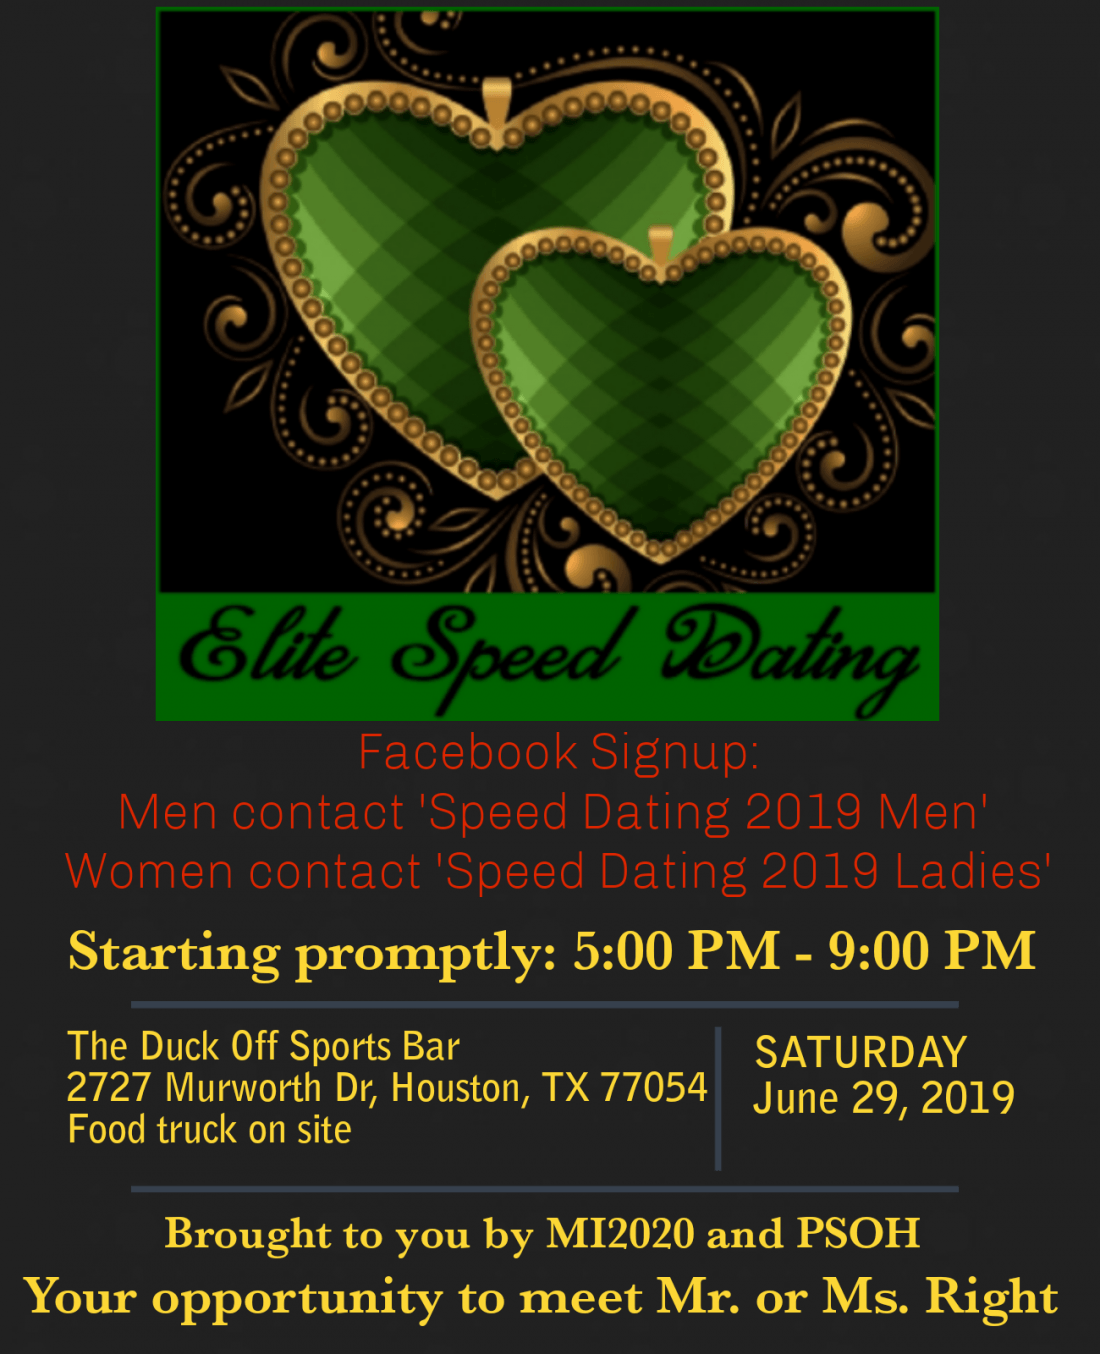 Speed dating st. louis mo